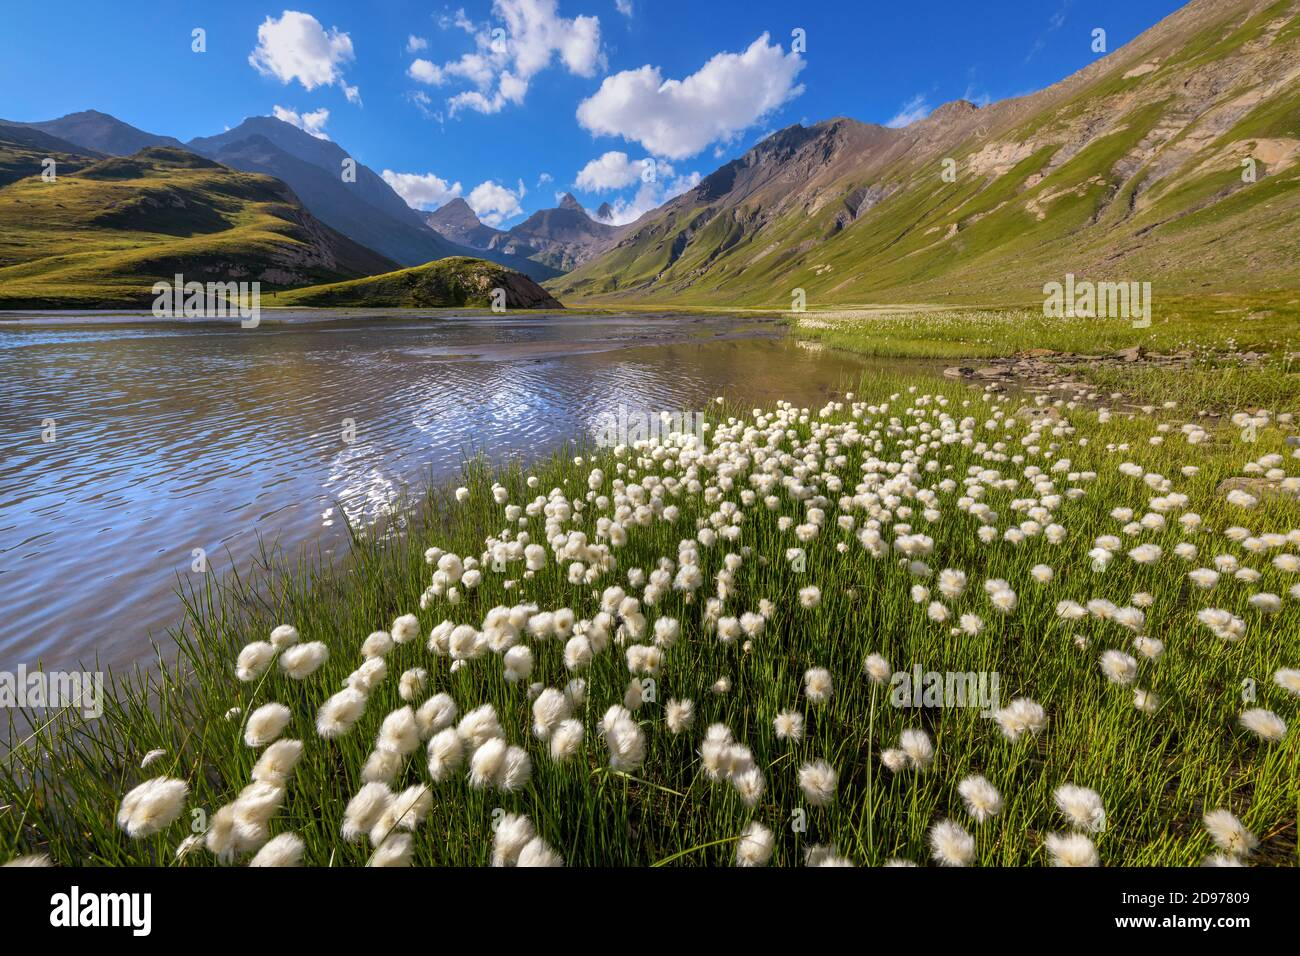 Cotton grass (Eriophorum sp) on the shores of Goleon lake, in the background, the Aiguilles d'Arves, Ecrins National Park, north of La Grave, Stock Photo